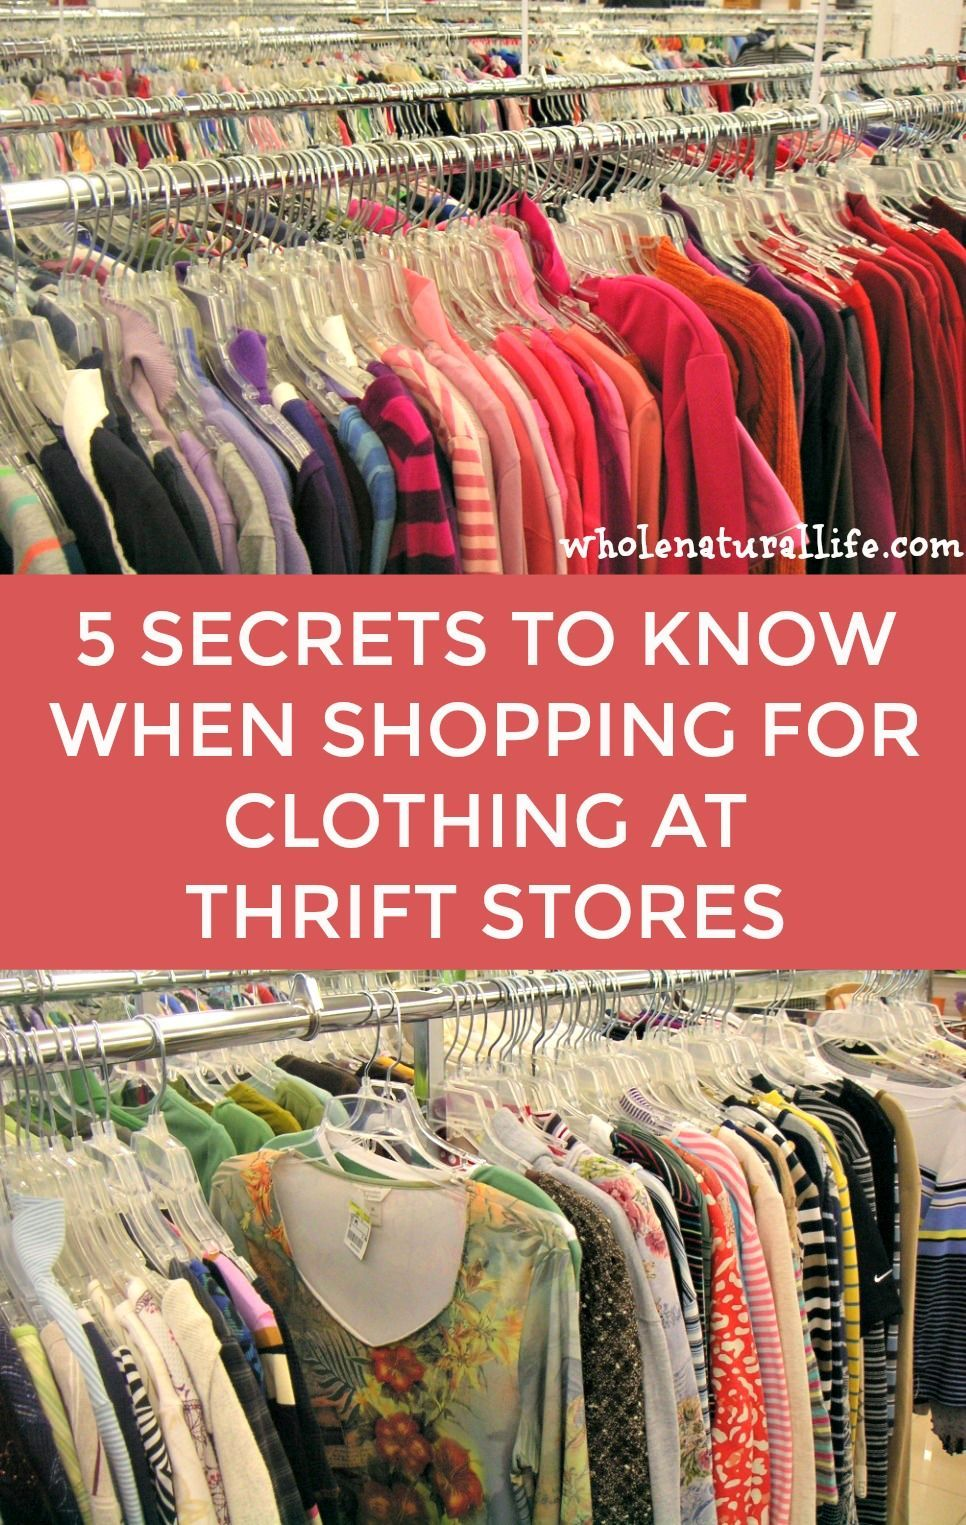 5 Secrets For Success When Shopping For Used Clothing At Thrift